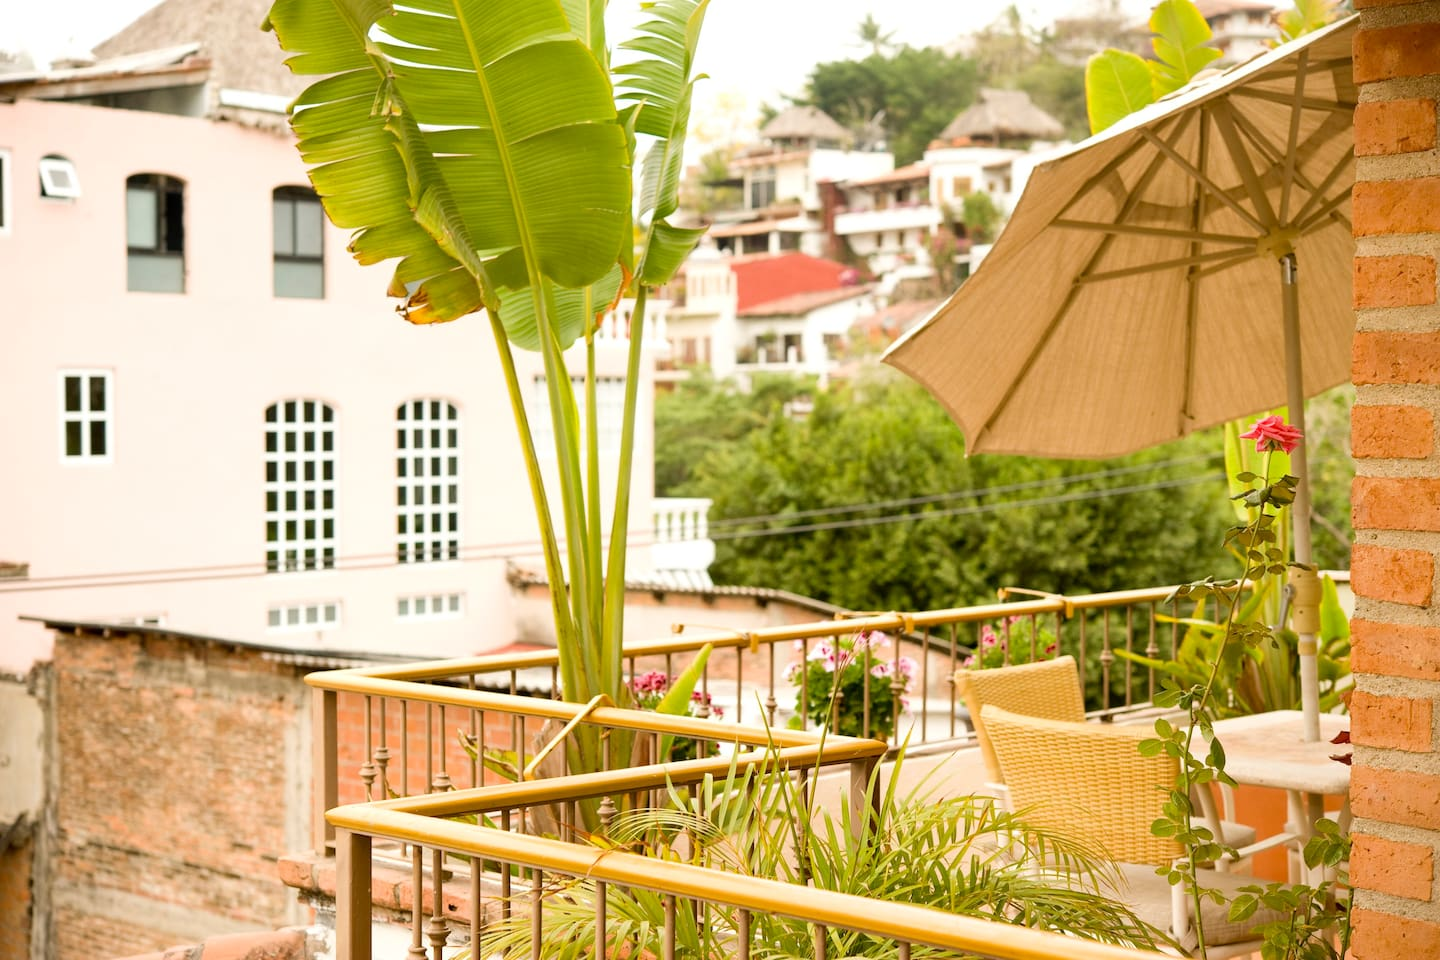 Private terrace overlooking Gringo Gulch, Rio Cuale and Old Town.